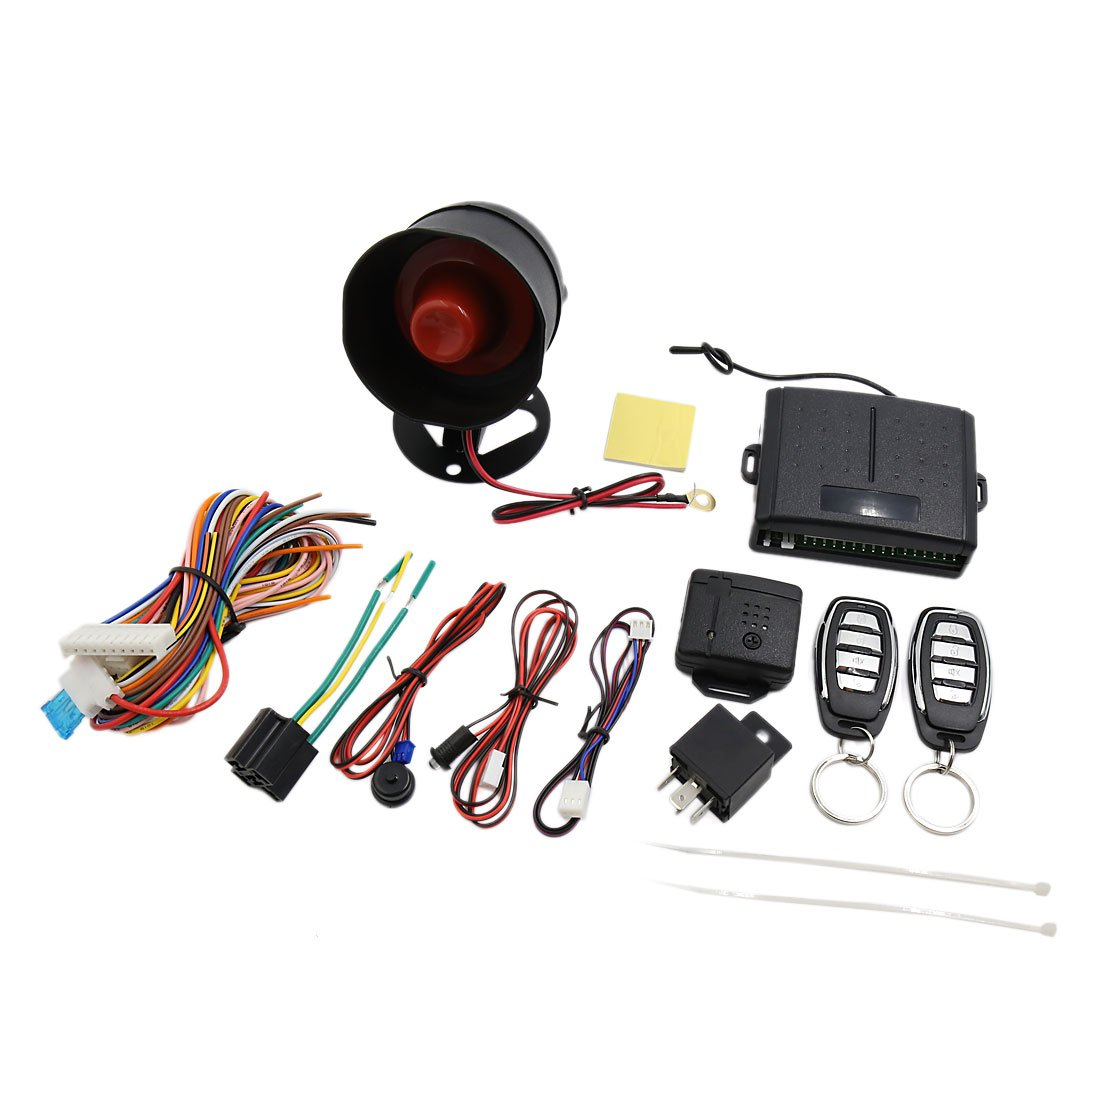 uxcell Car Alarm Security System Manual Reset Button Function Burglar Alarm Protection 12V